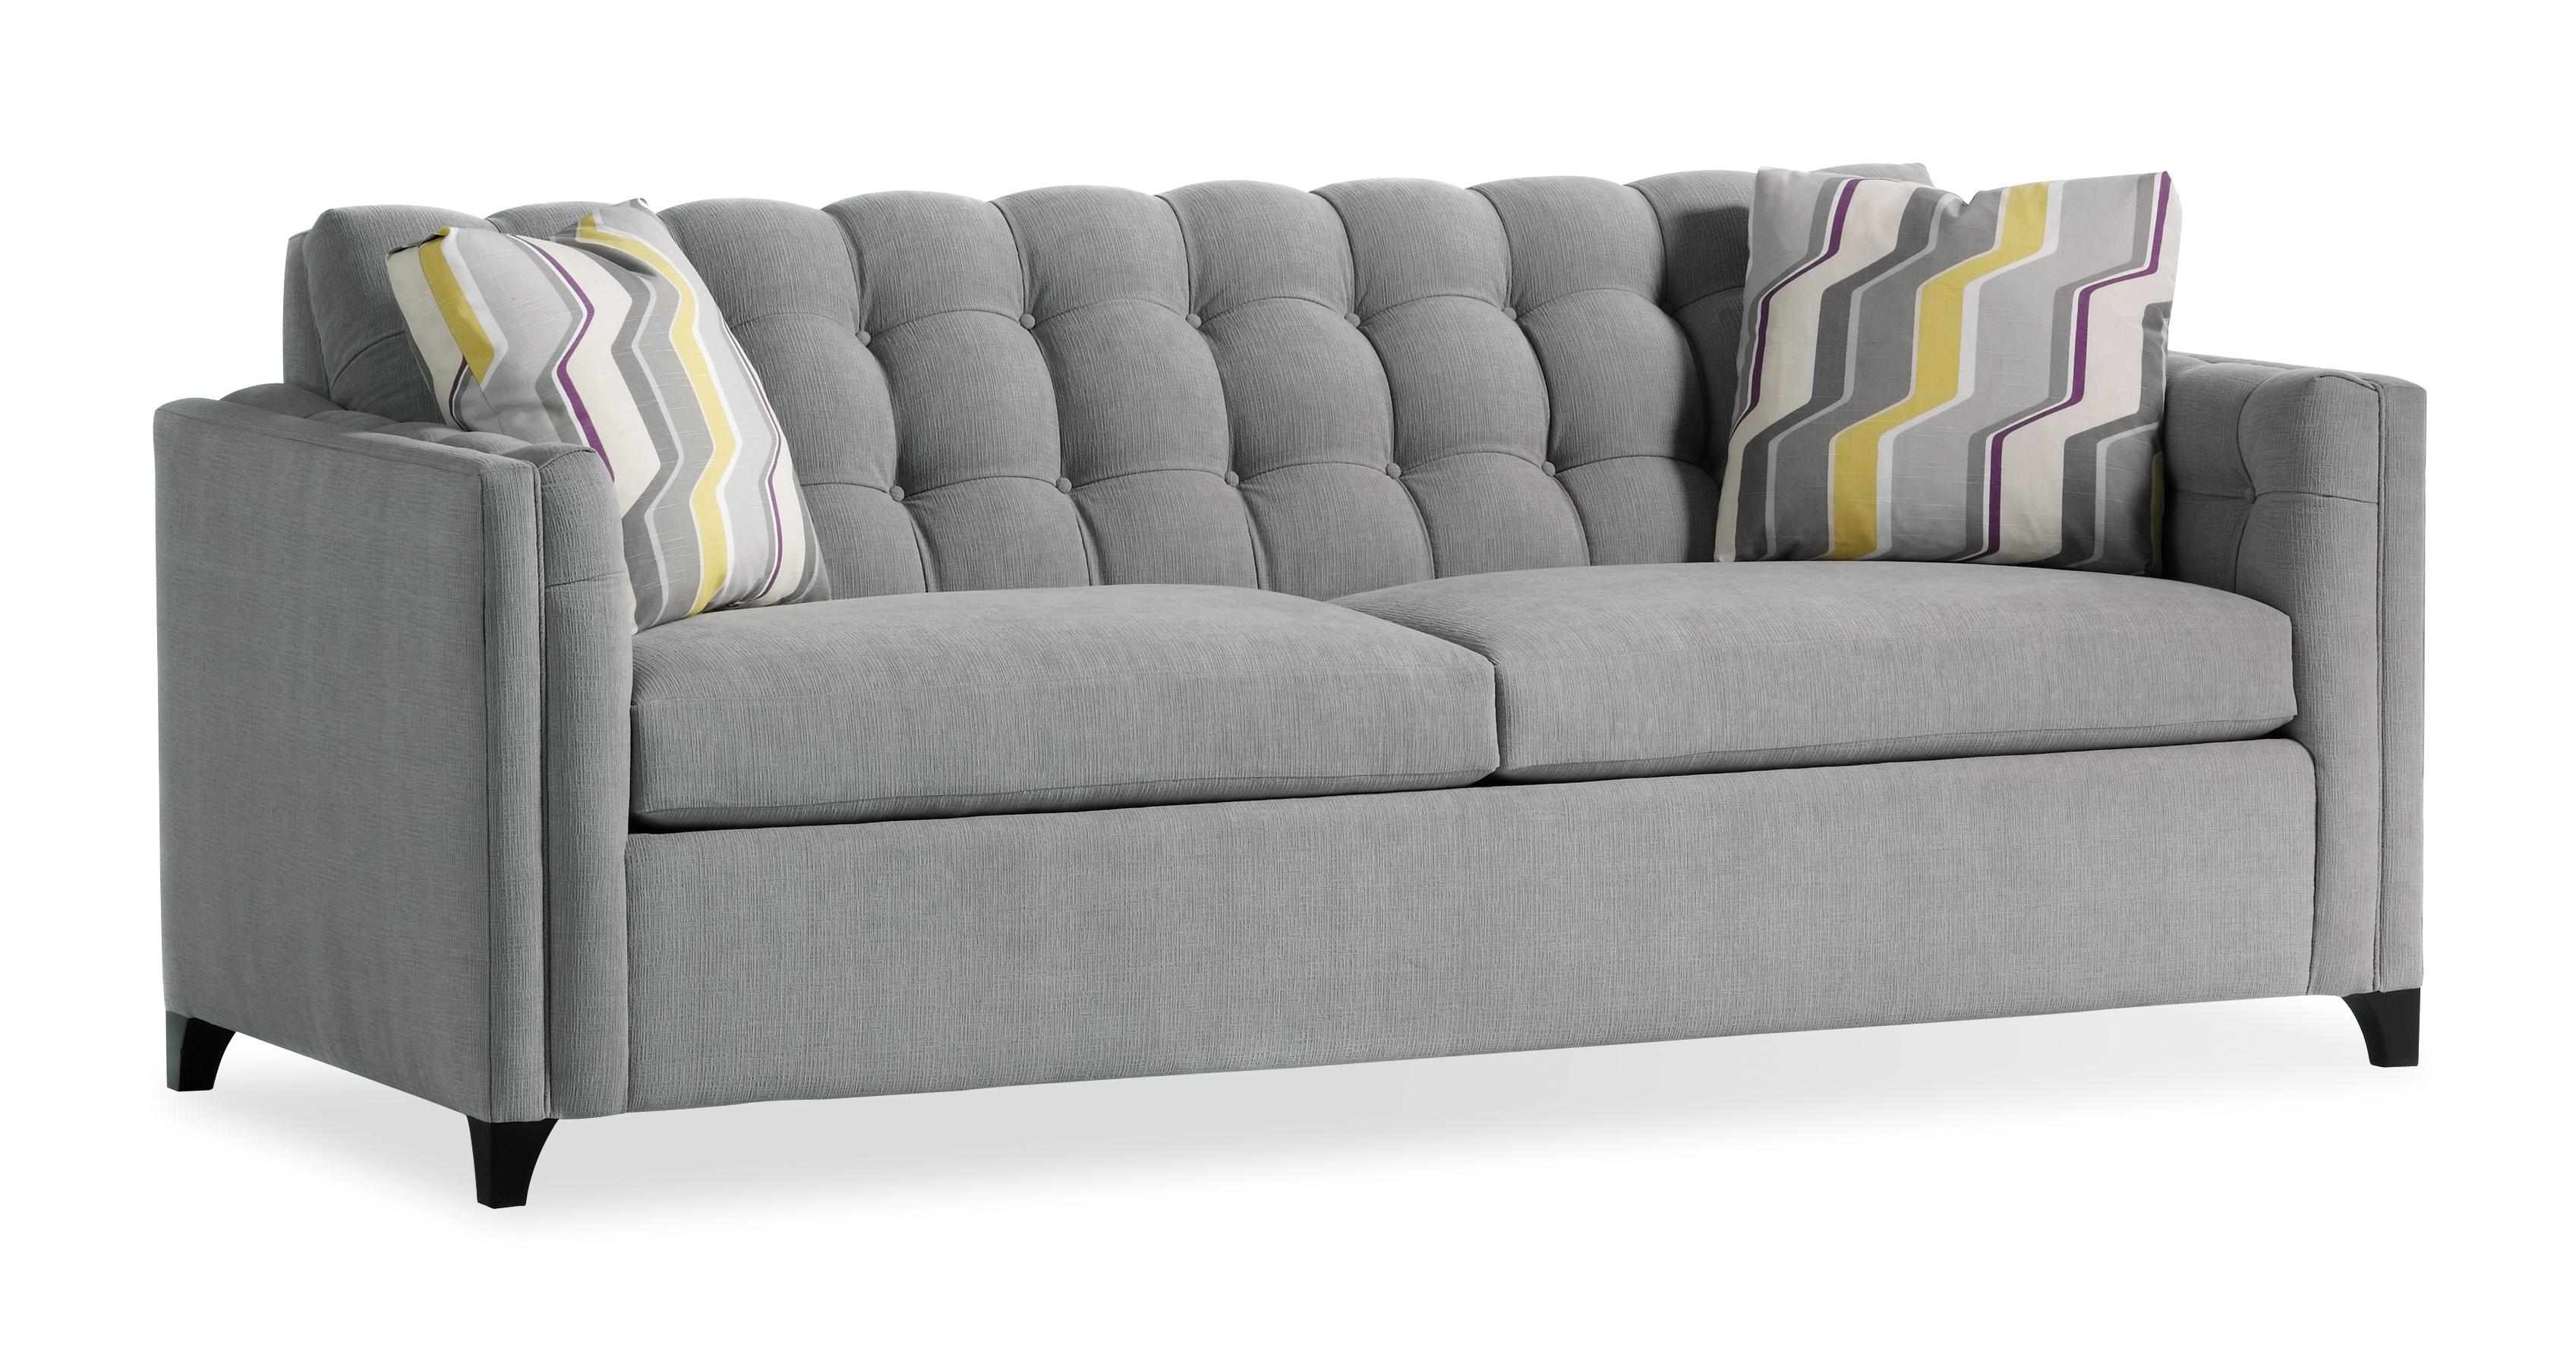 Sofas Center : Tufted Sleeper Sofa Stunning Photo Design Urban Throughout Ava Tufted Sleeper Sofas (Image 17 of 20)